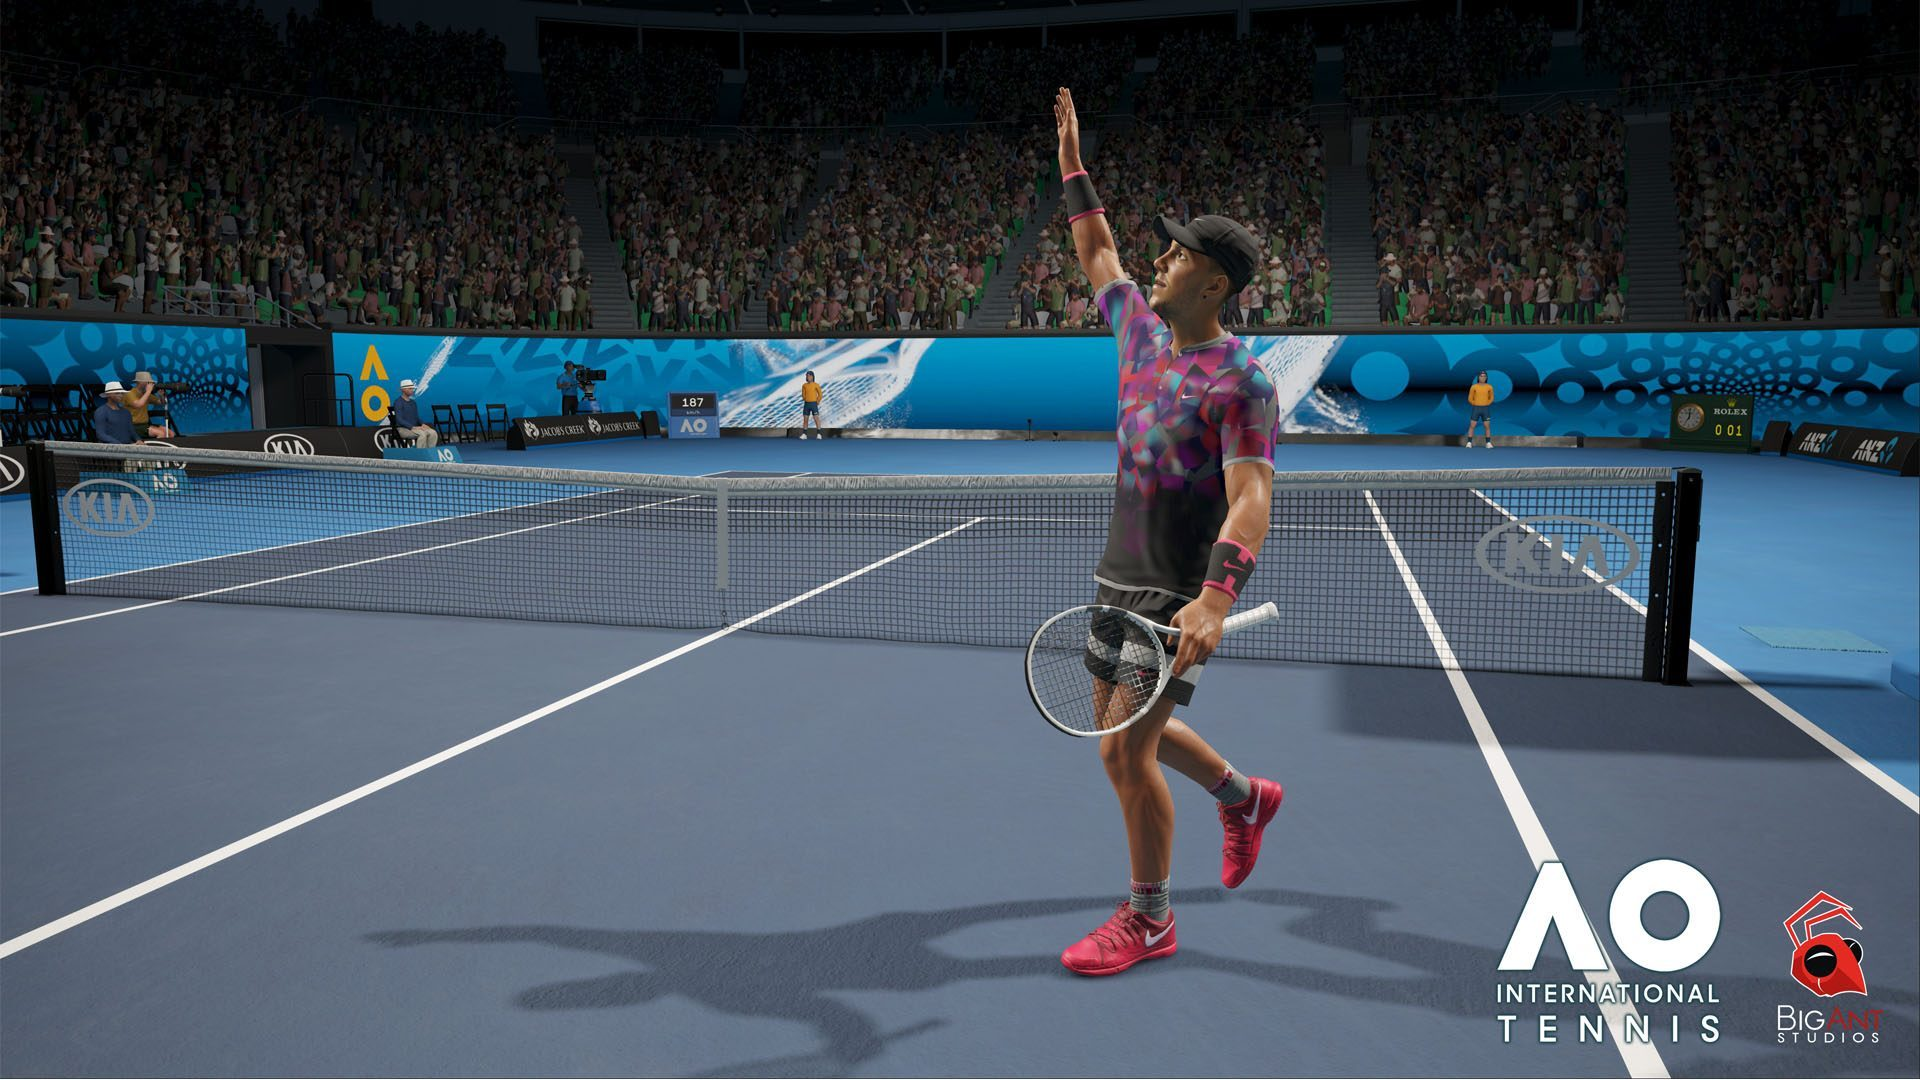 AO International Tennis_ScreenShot2